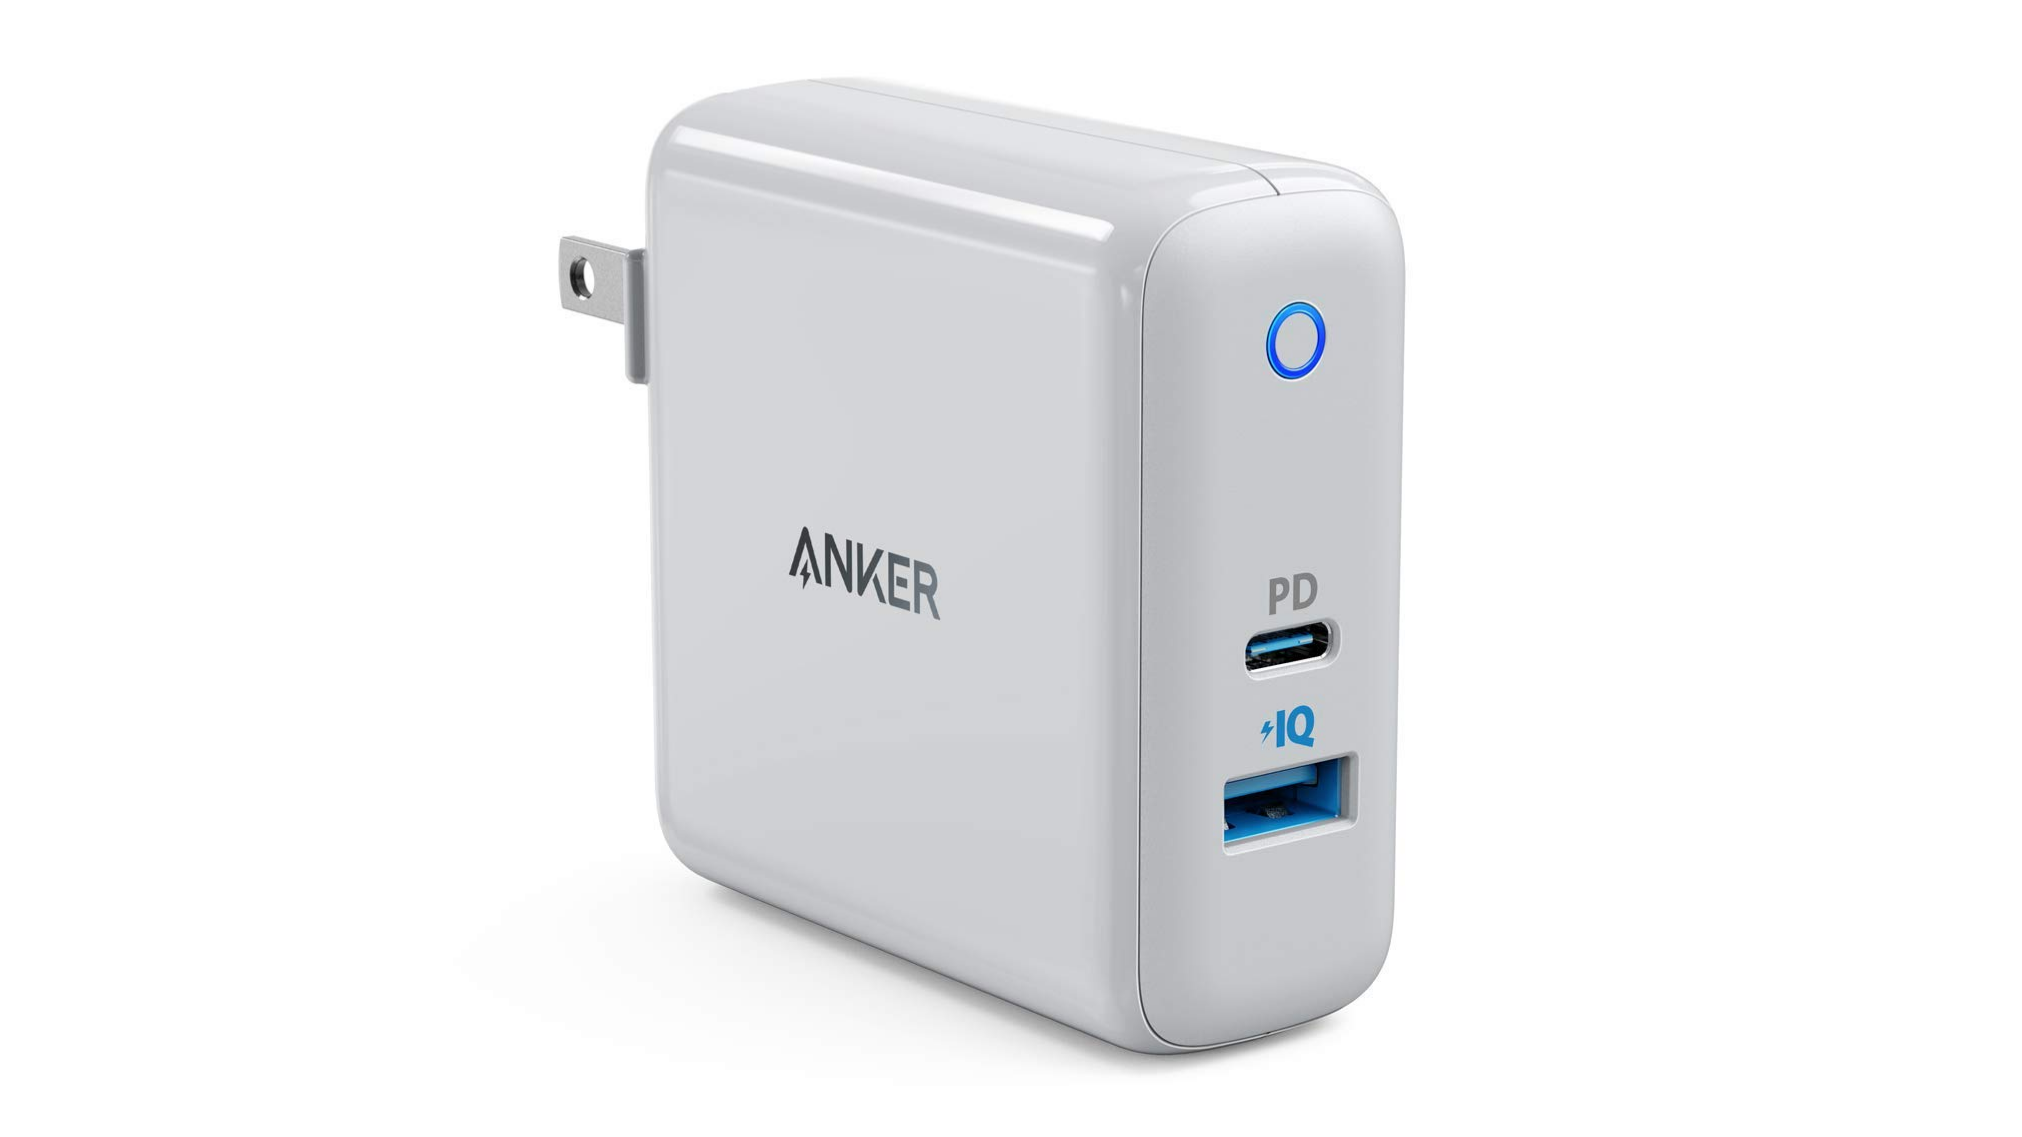 Grab this 30W USB-C charger from Anker for $21 ($5 off) with our exclusive coupon code